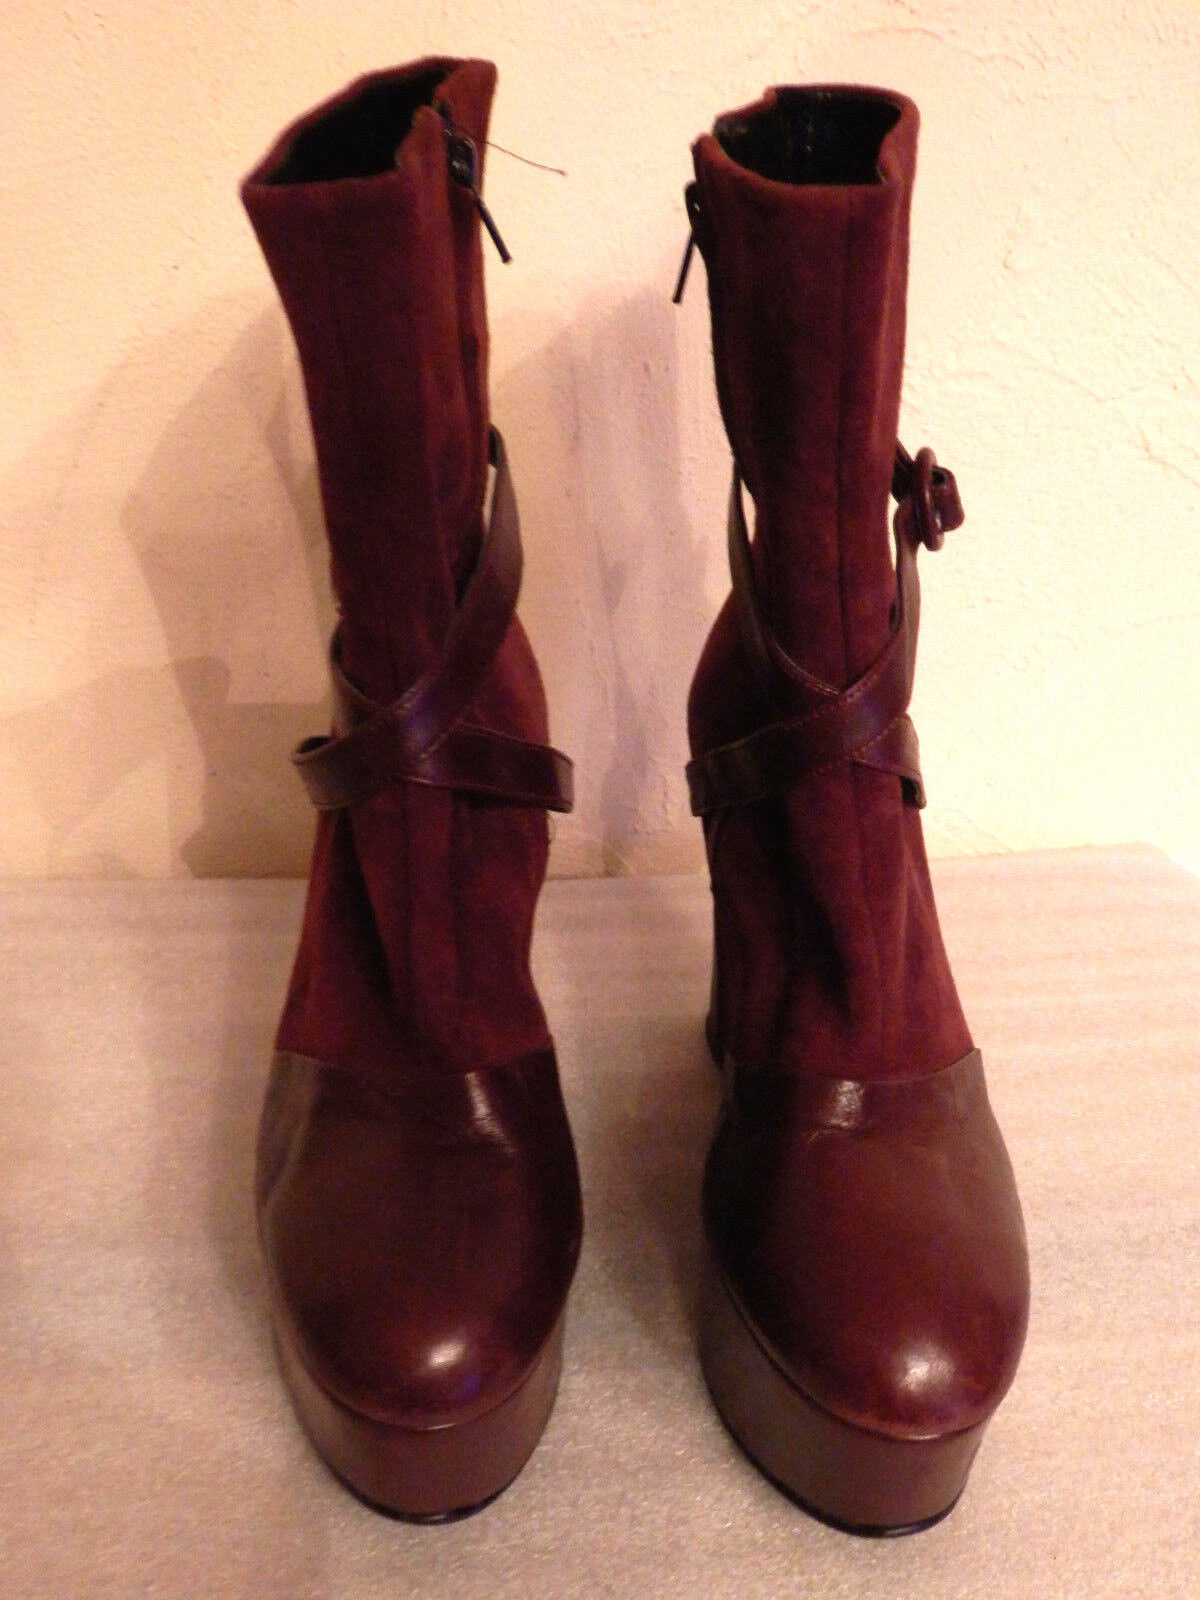 SONIA RYKIEL - BOOTS- BOOTS - SIZE SIZE SIZE 40 - AUTHENTIC 66ef38